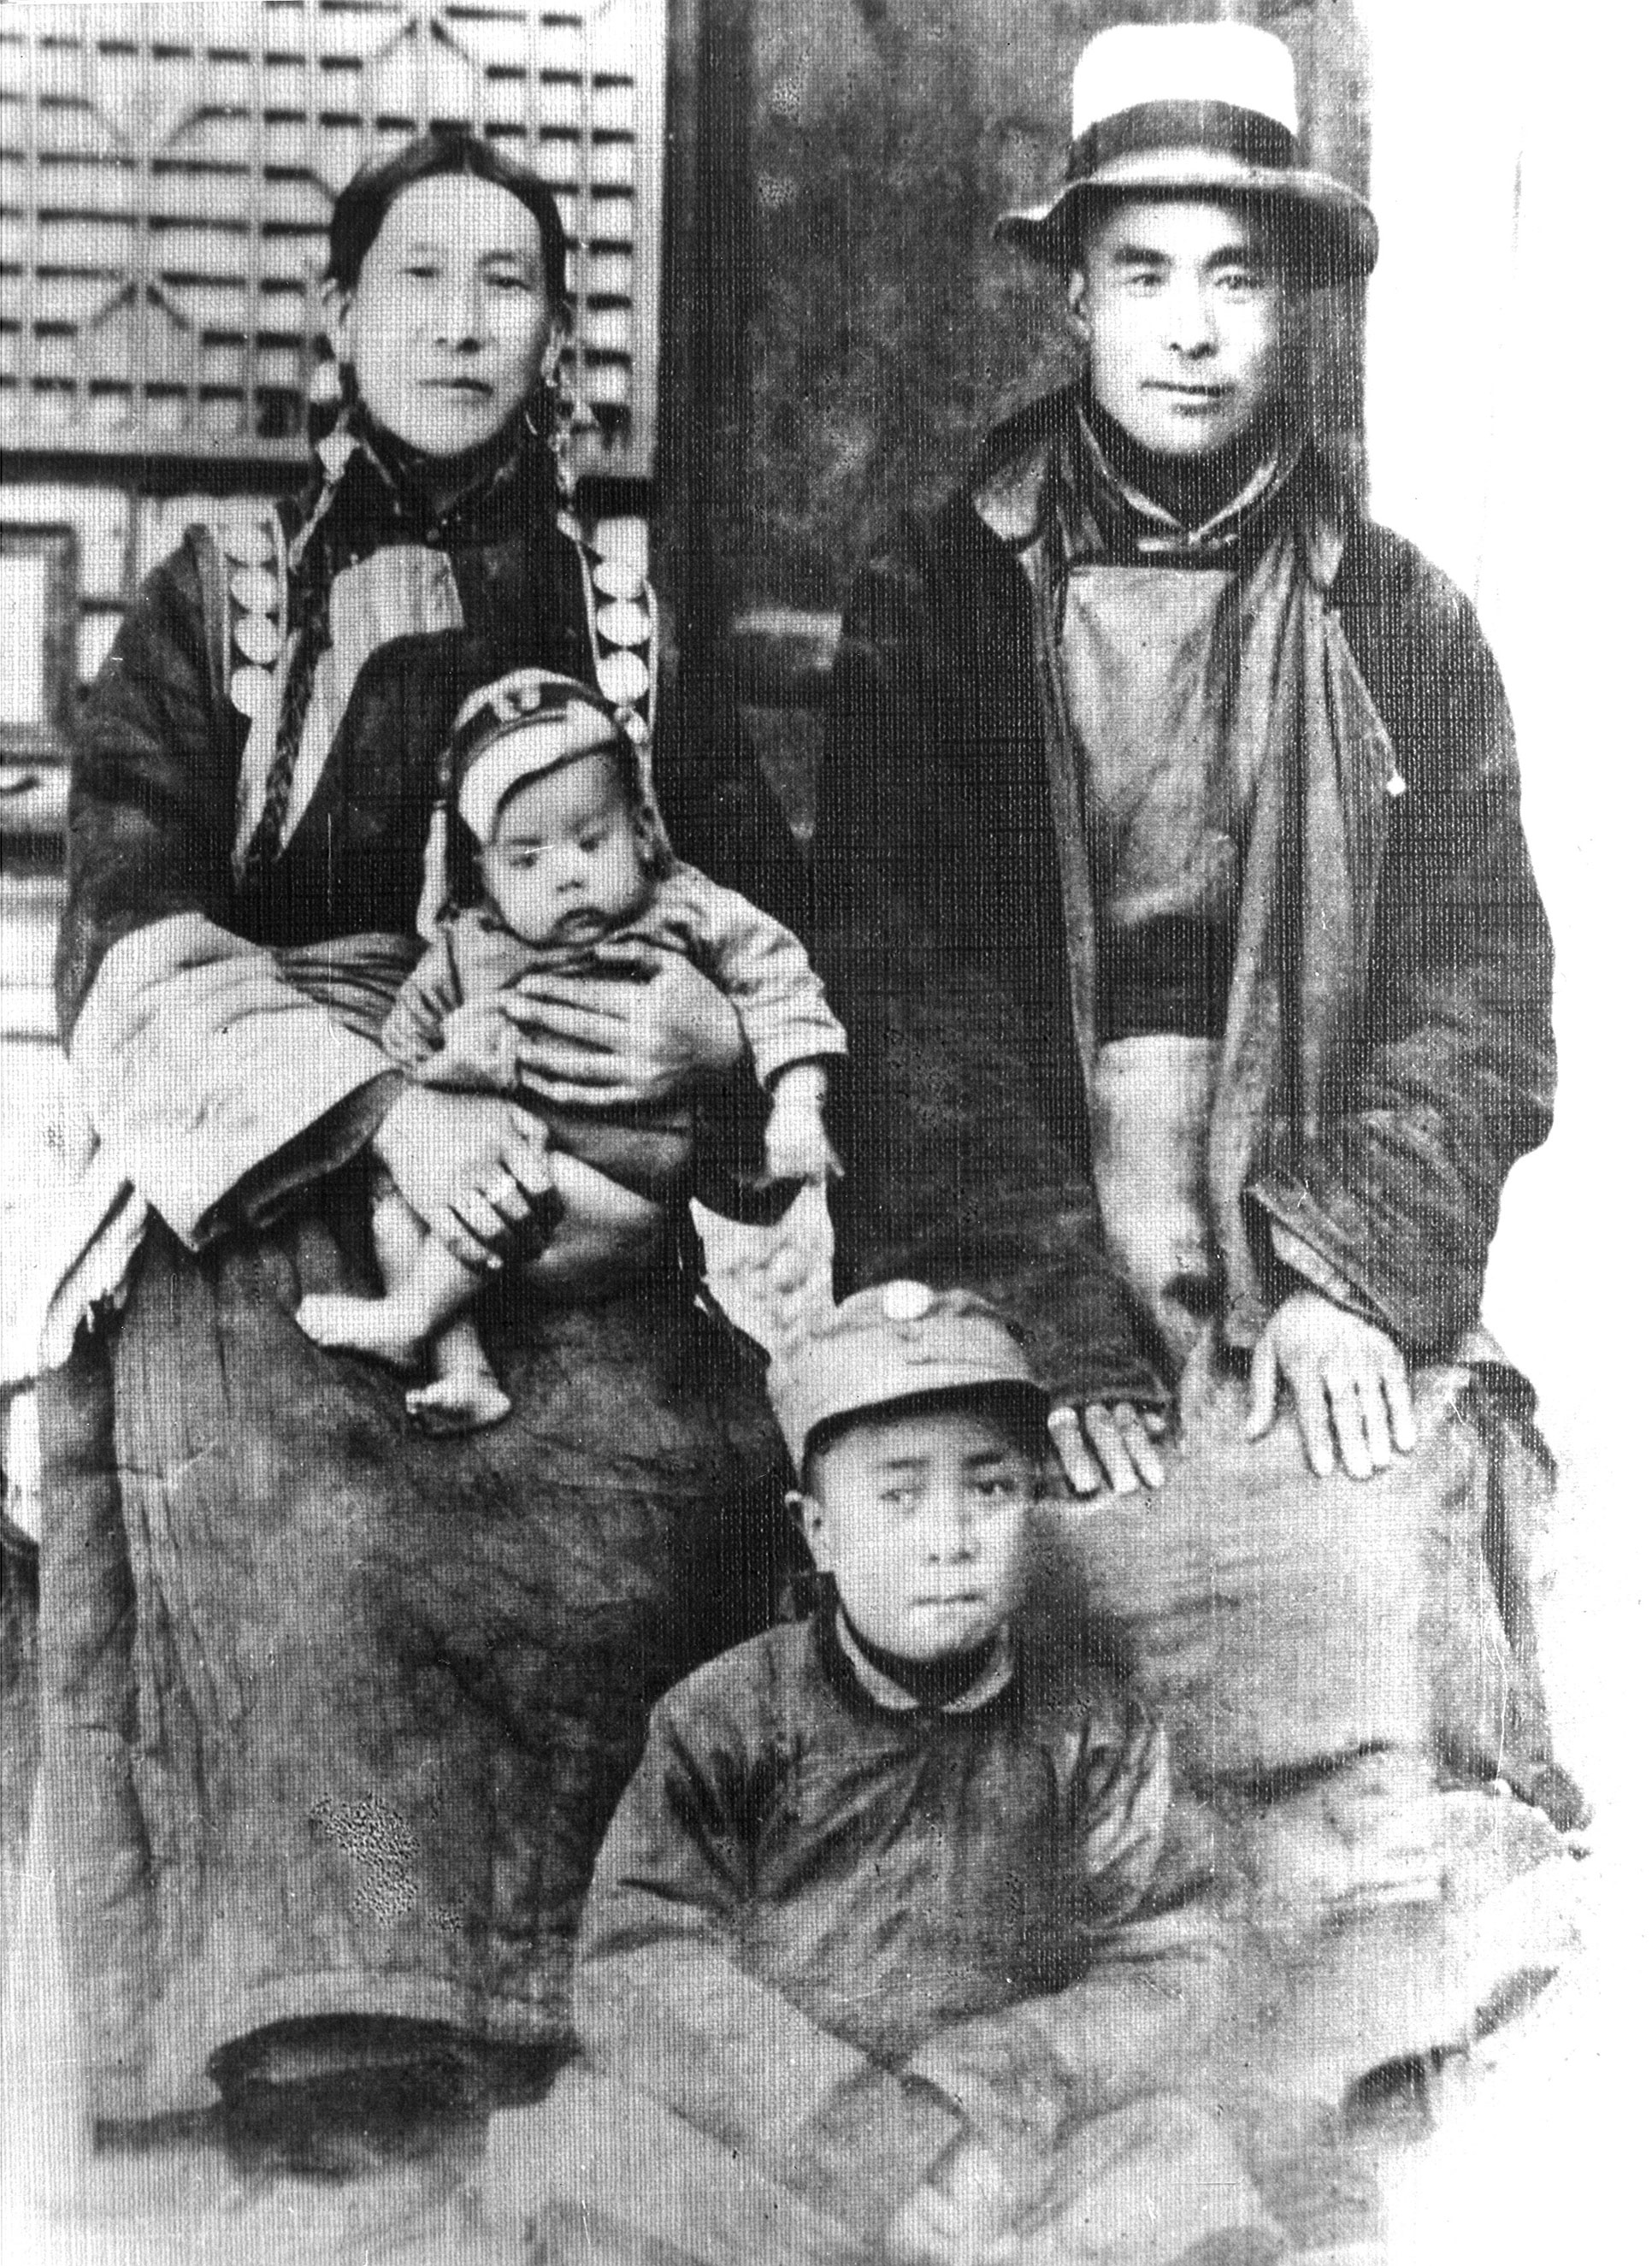 His Holiness as a baby with his mother Dekyi Tsering, father Choekyong Tsering and elder brother Gyalo Thondup taken in Taktser, Amdo Tibet, circa 1935.